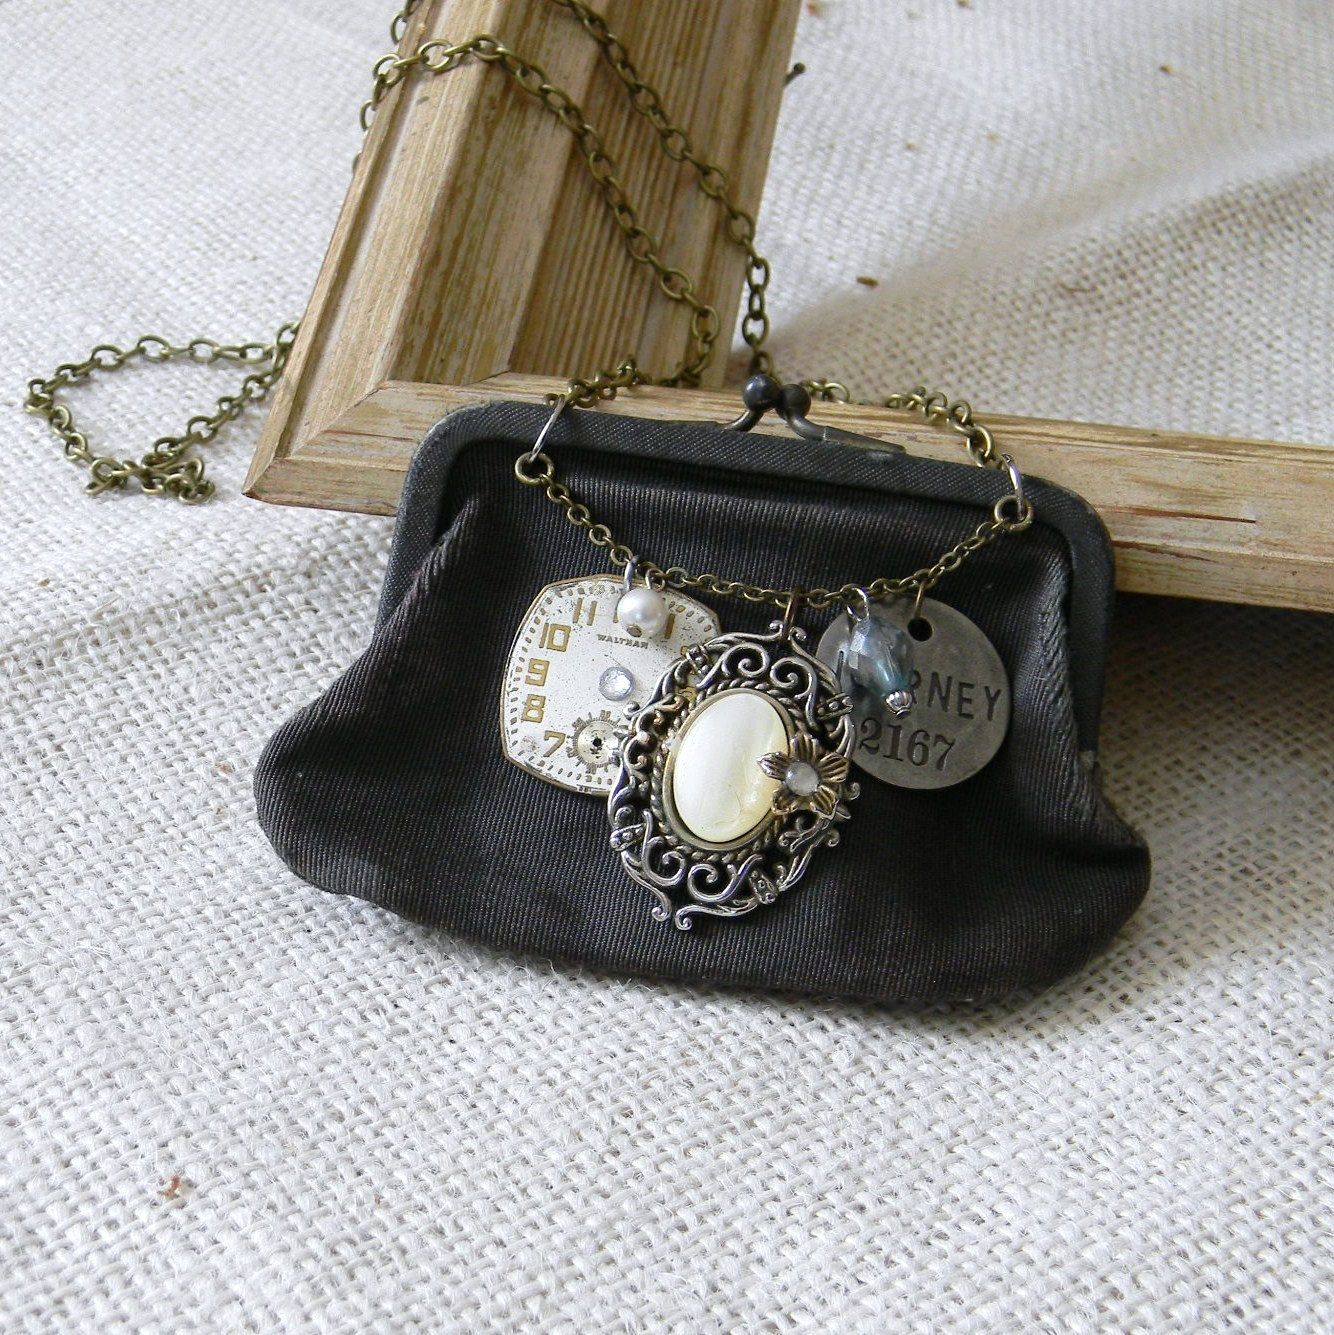 Repurposed Vintage Coin Purse Charm Necklace